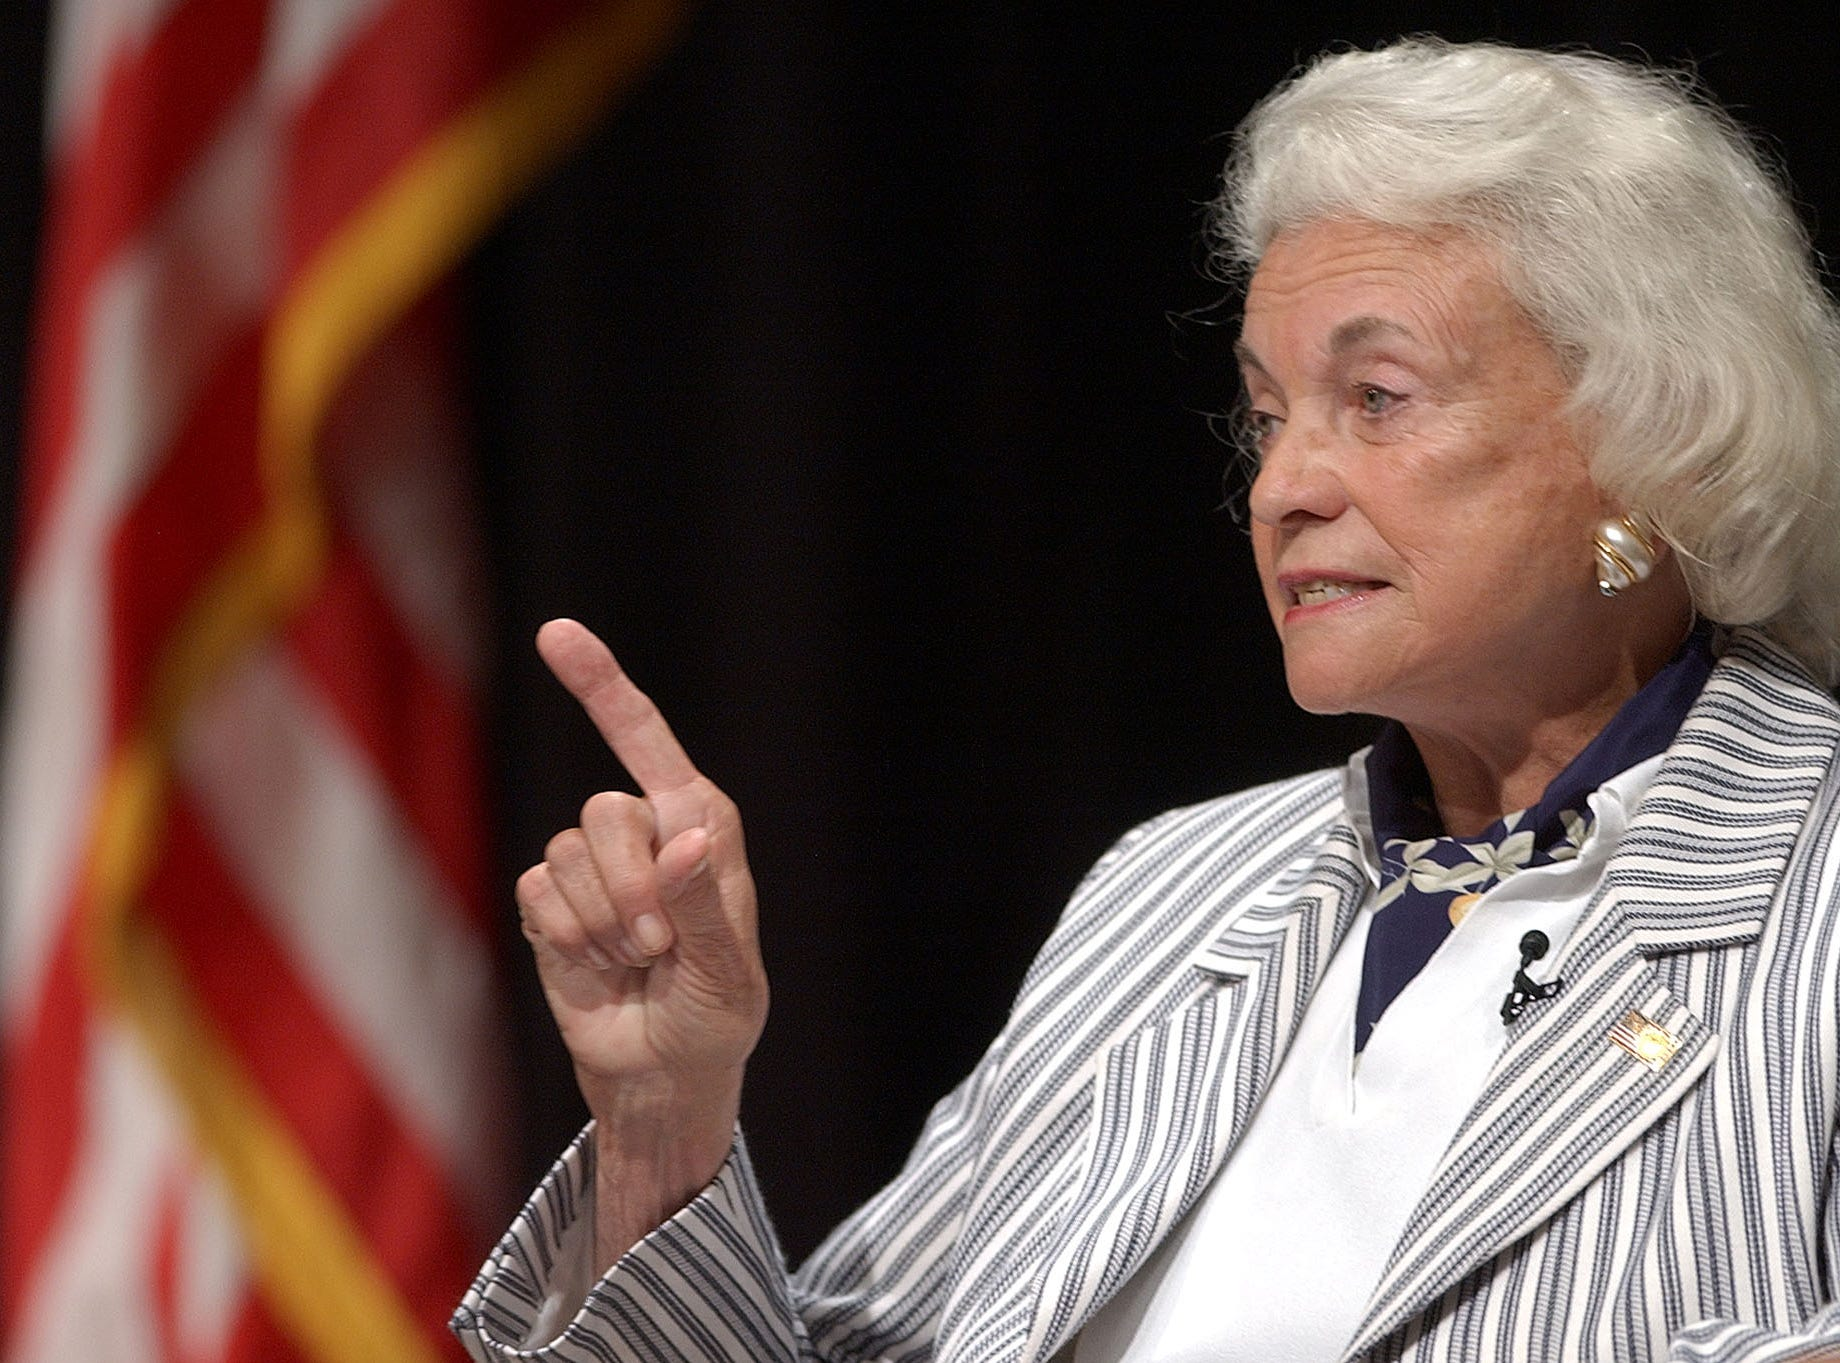 Associate Justice of the U.S. Supreme Court, Sandra Day O'Connor gestures while speaking to members of the 2004 9th Circuit Judicial Conference Thursday, July 22, 2004, in Monterey, Calif.